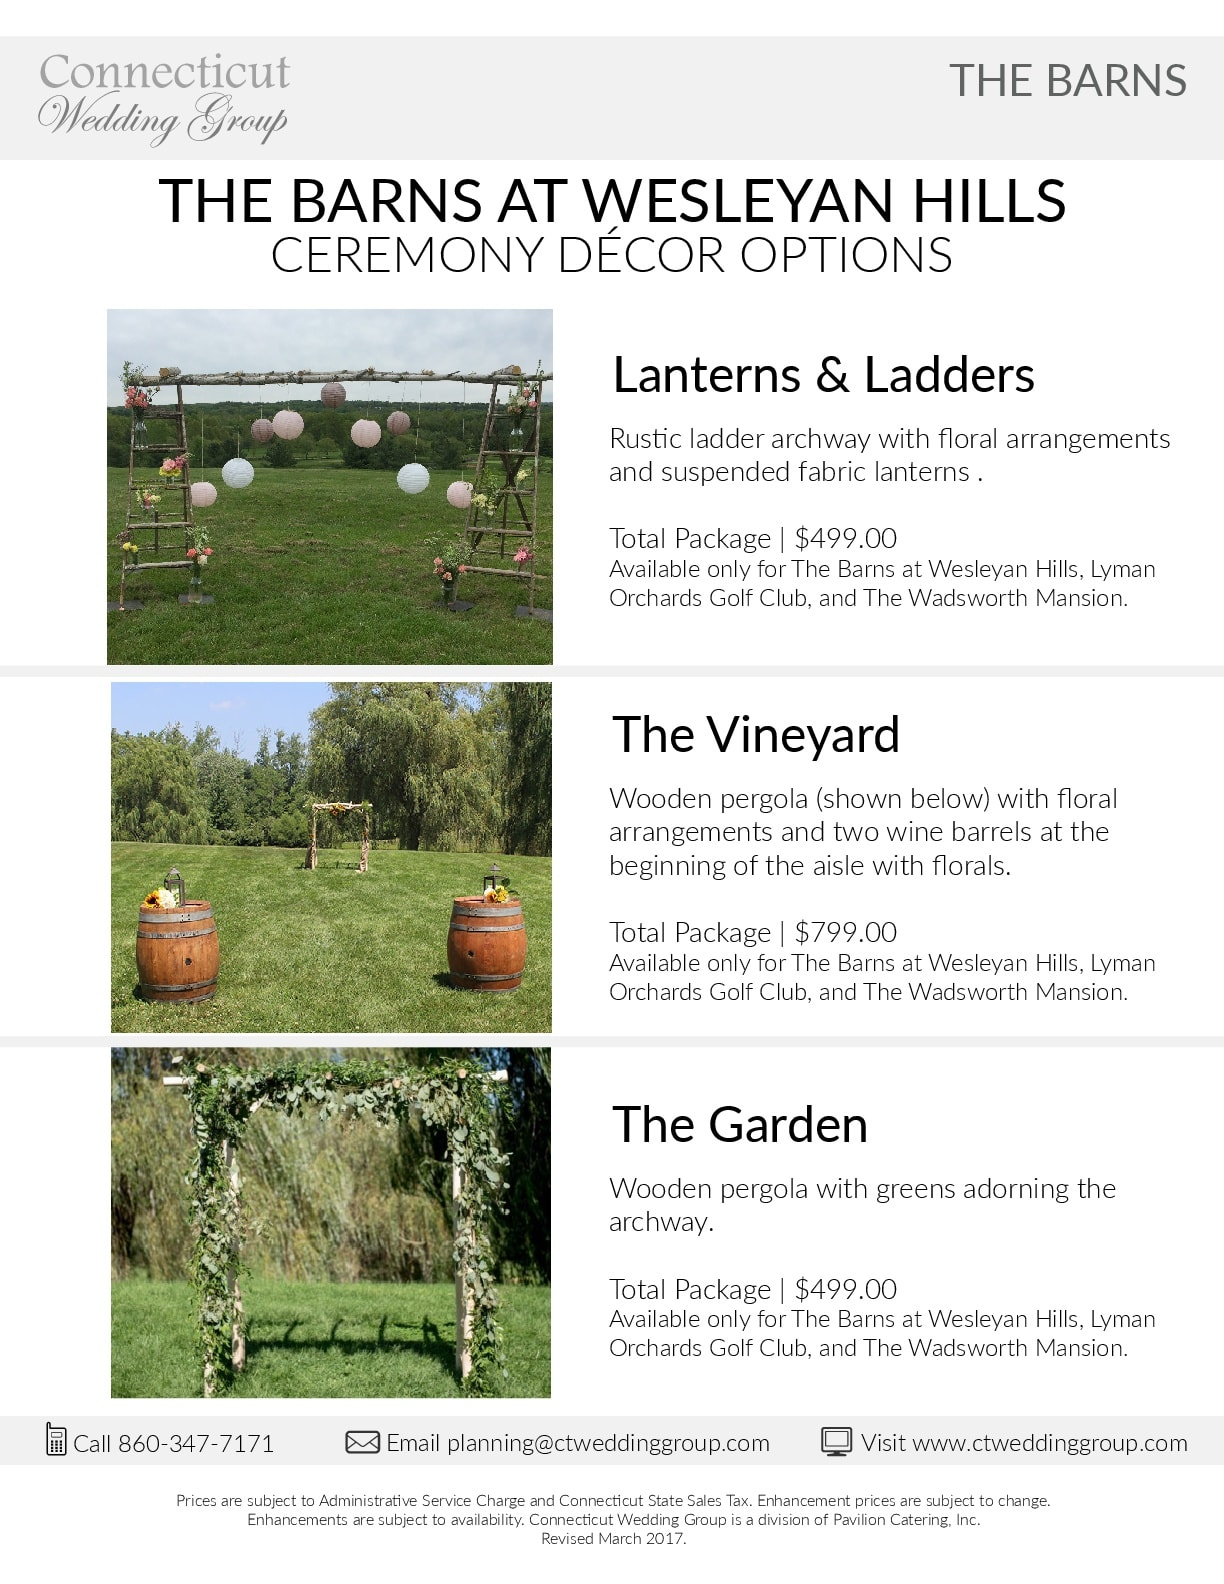 117_15315_Barns-at-Wesleyan-Hills-Ceremony-Decor-Packages_2017-001